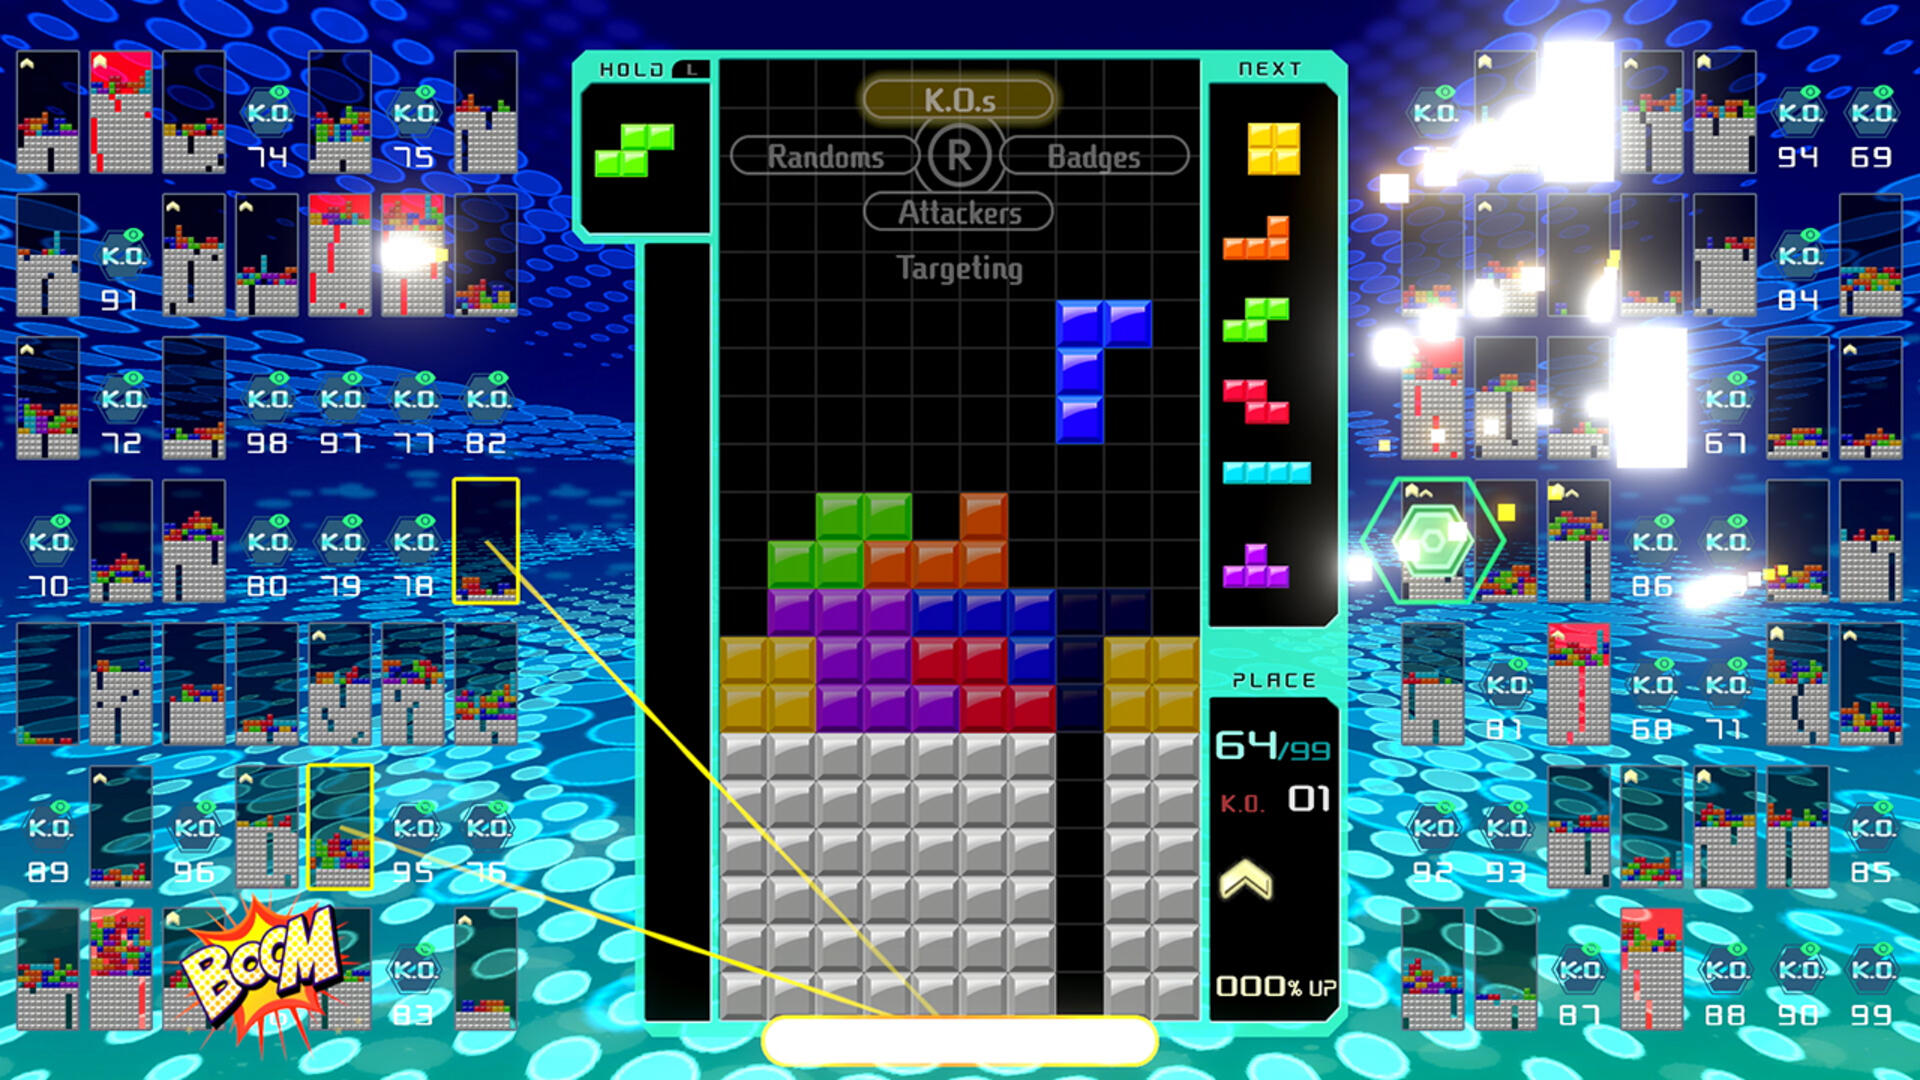 Tetris 99 Tips - How to Play Tetris 99 and Win at Tetris Battle